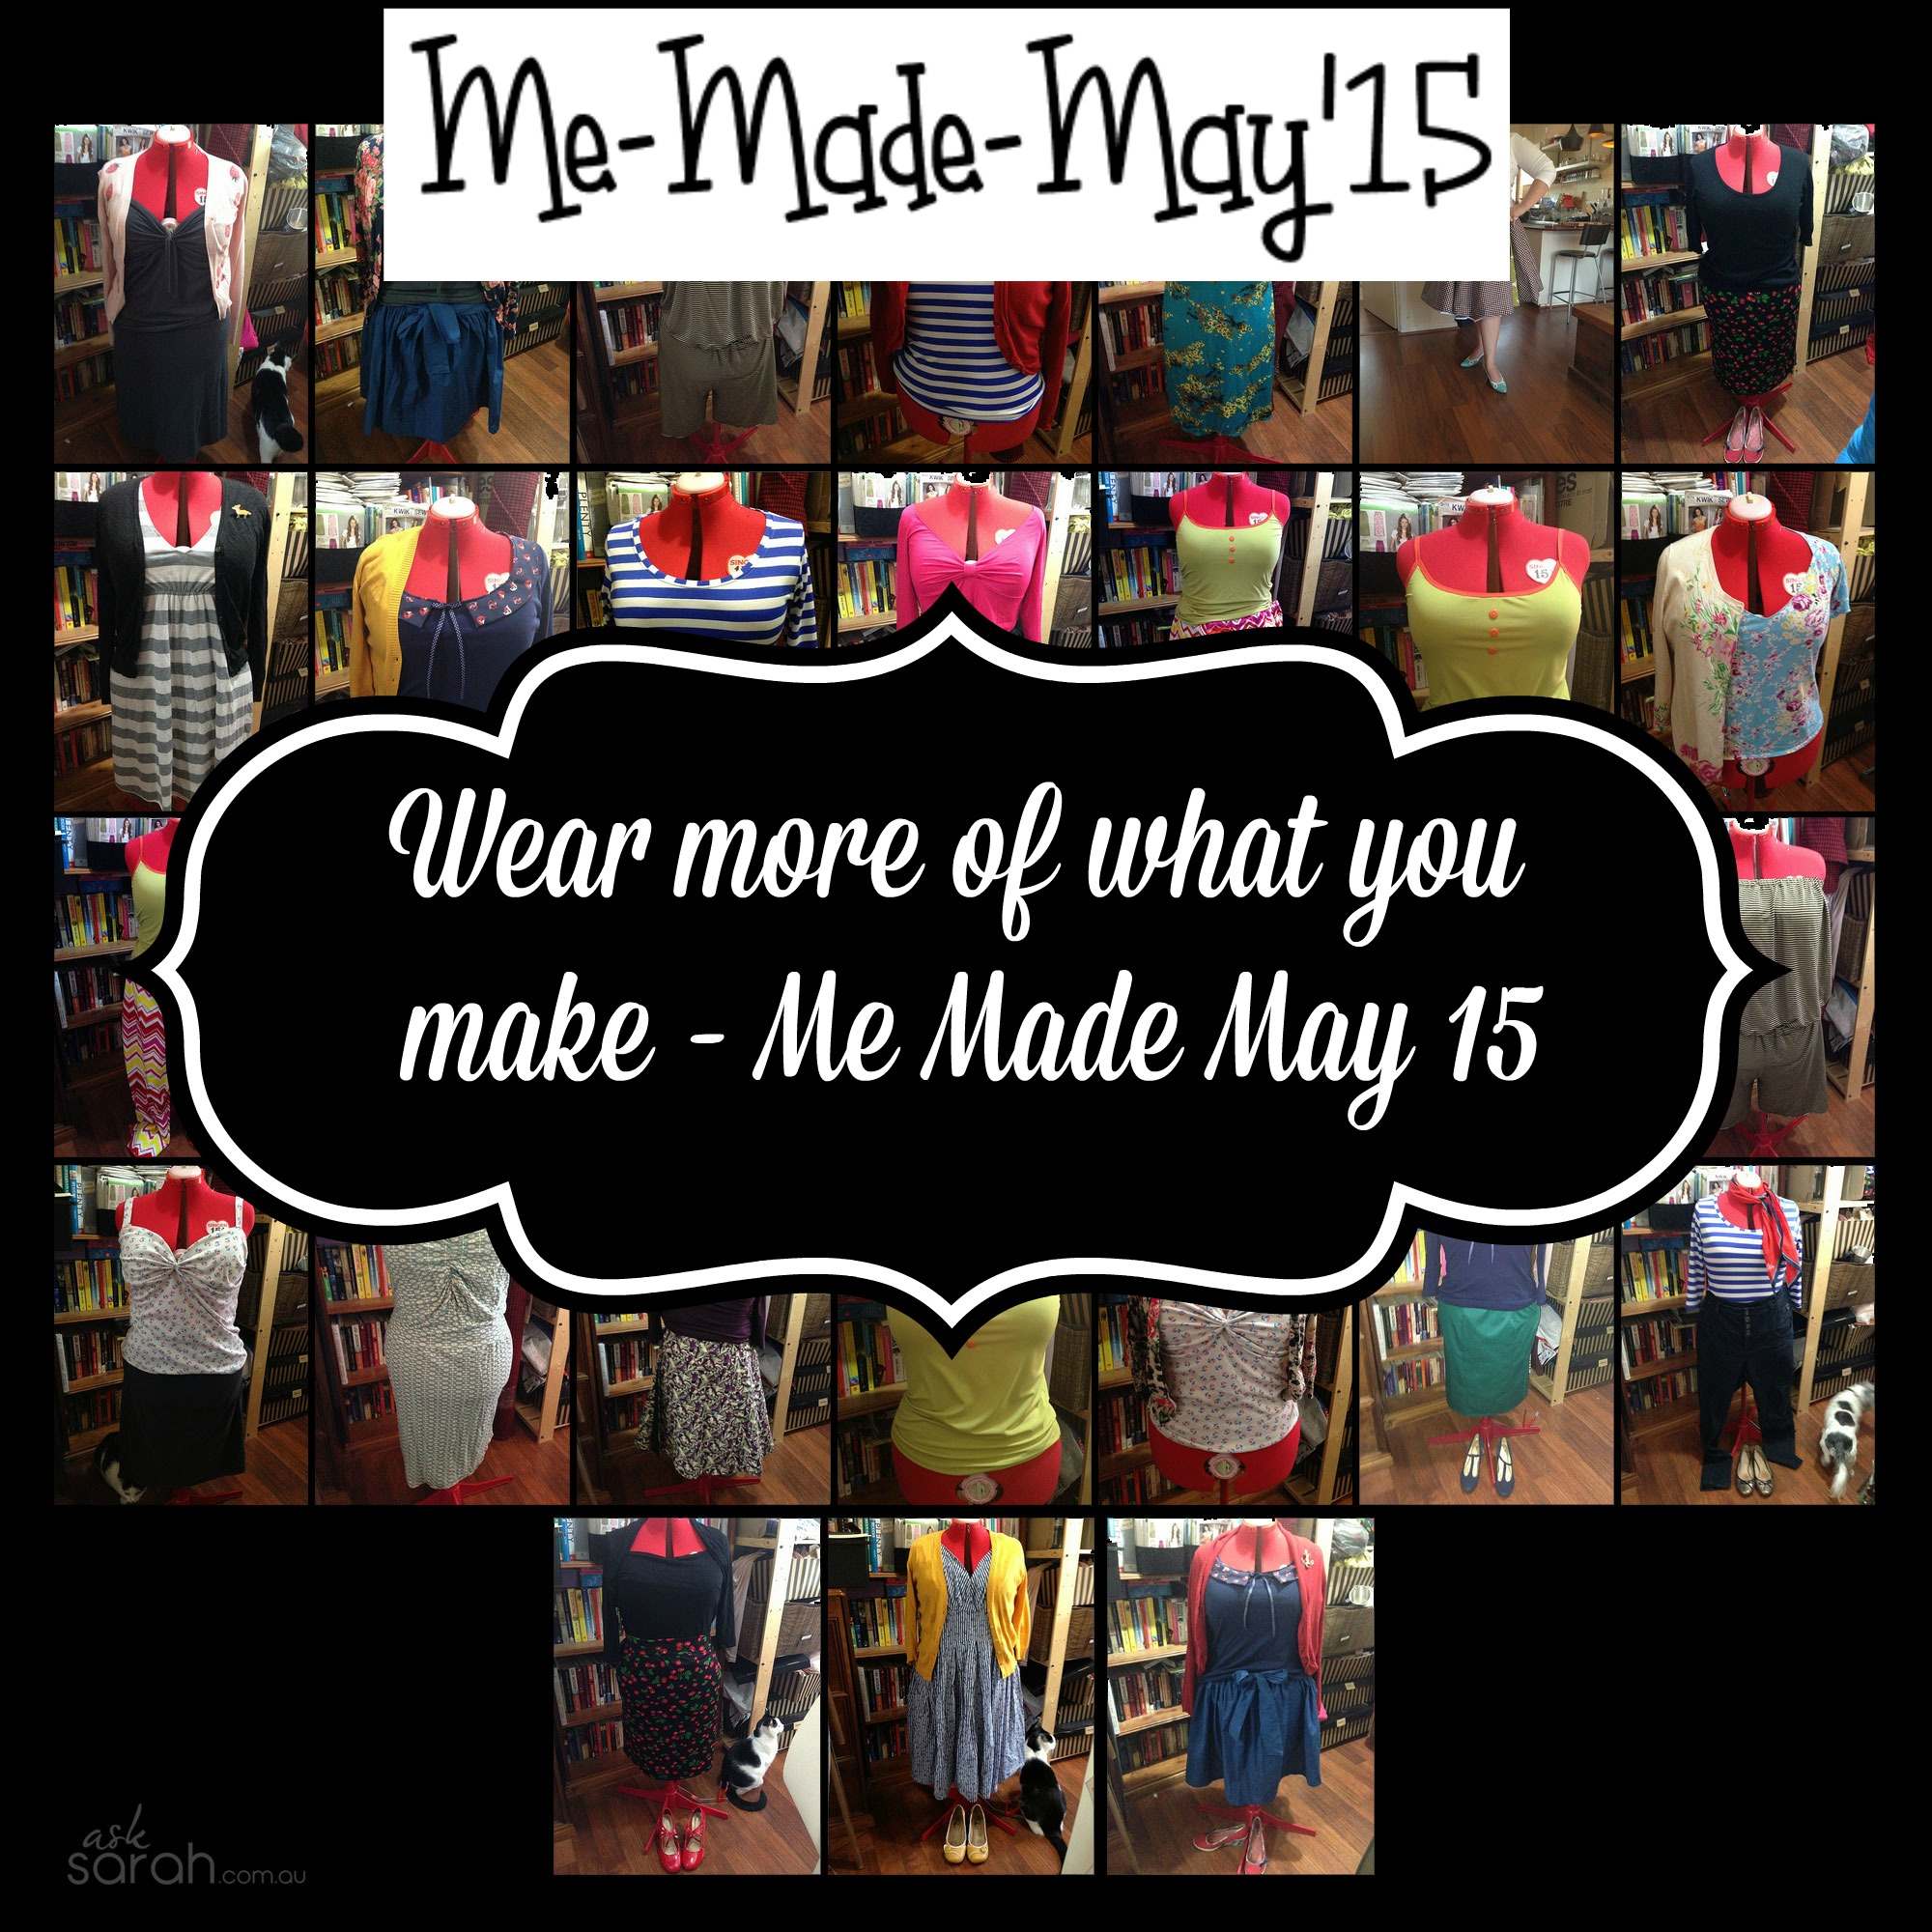 My Pledge - Me Made May 2015